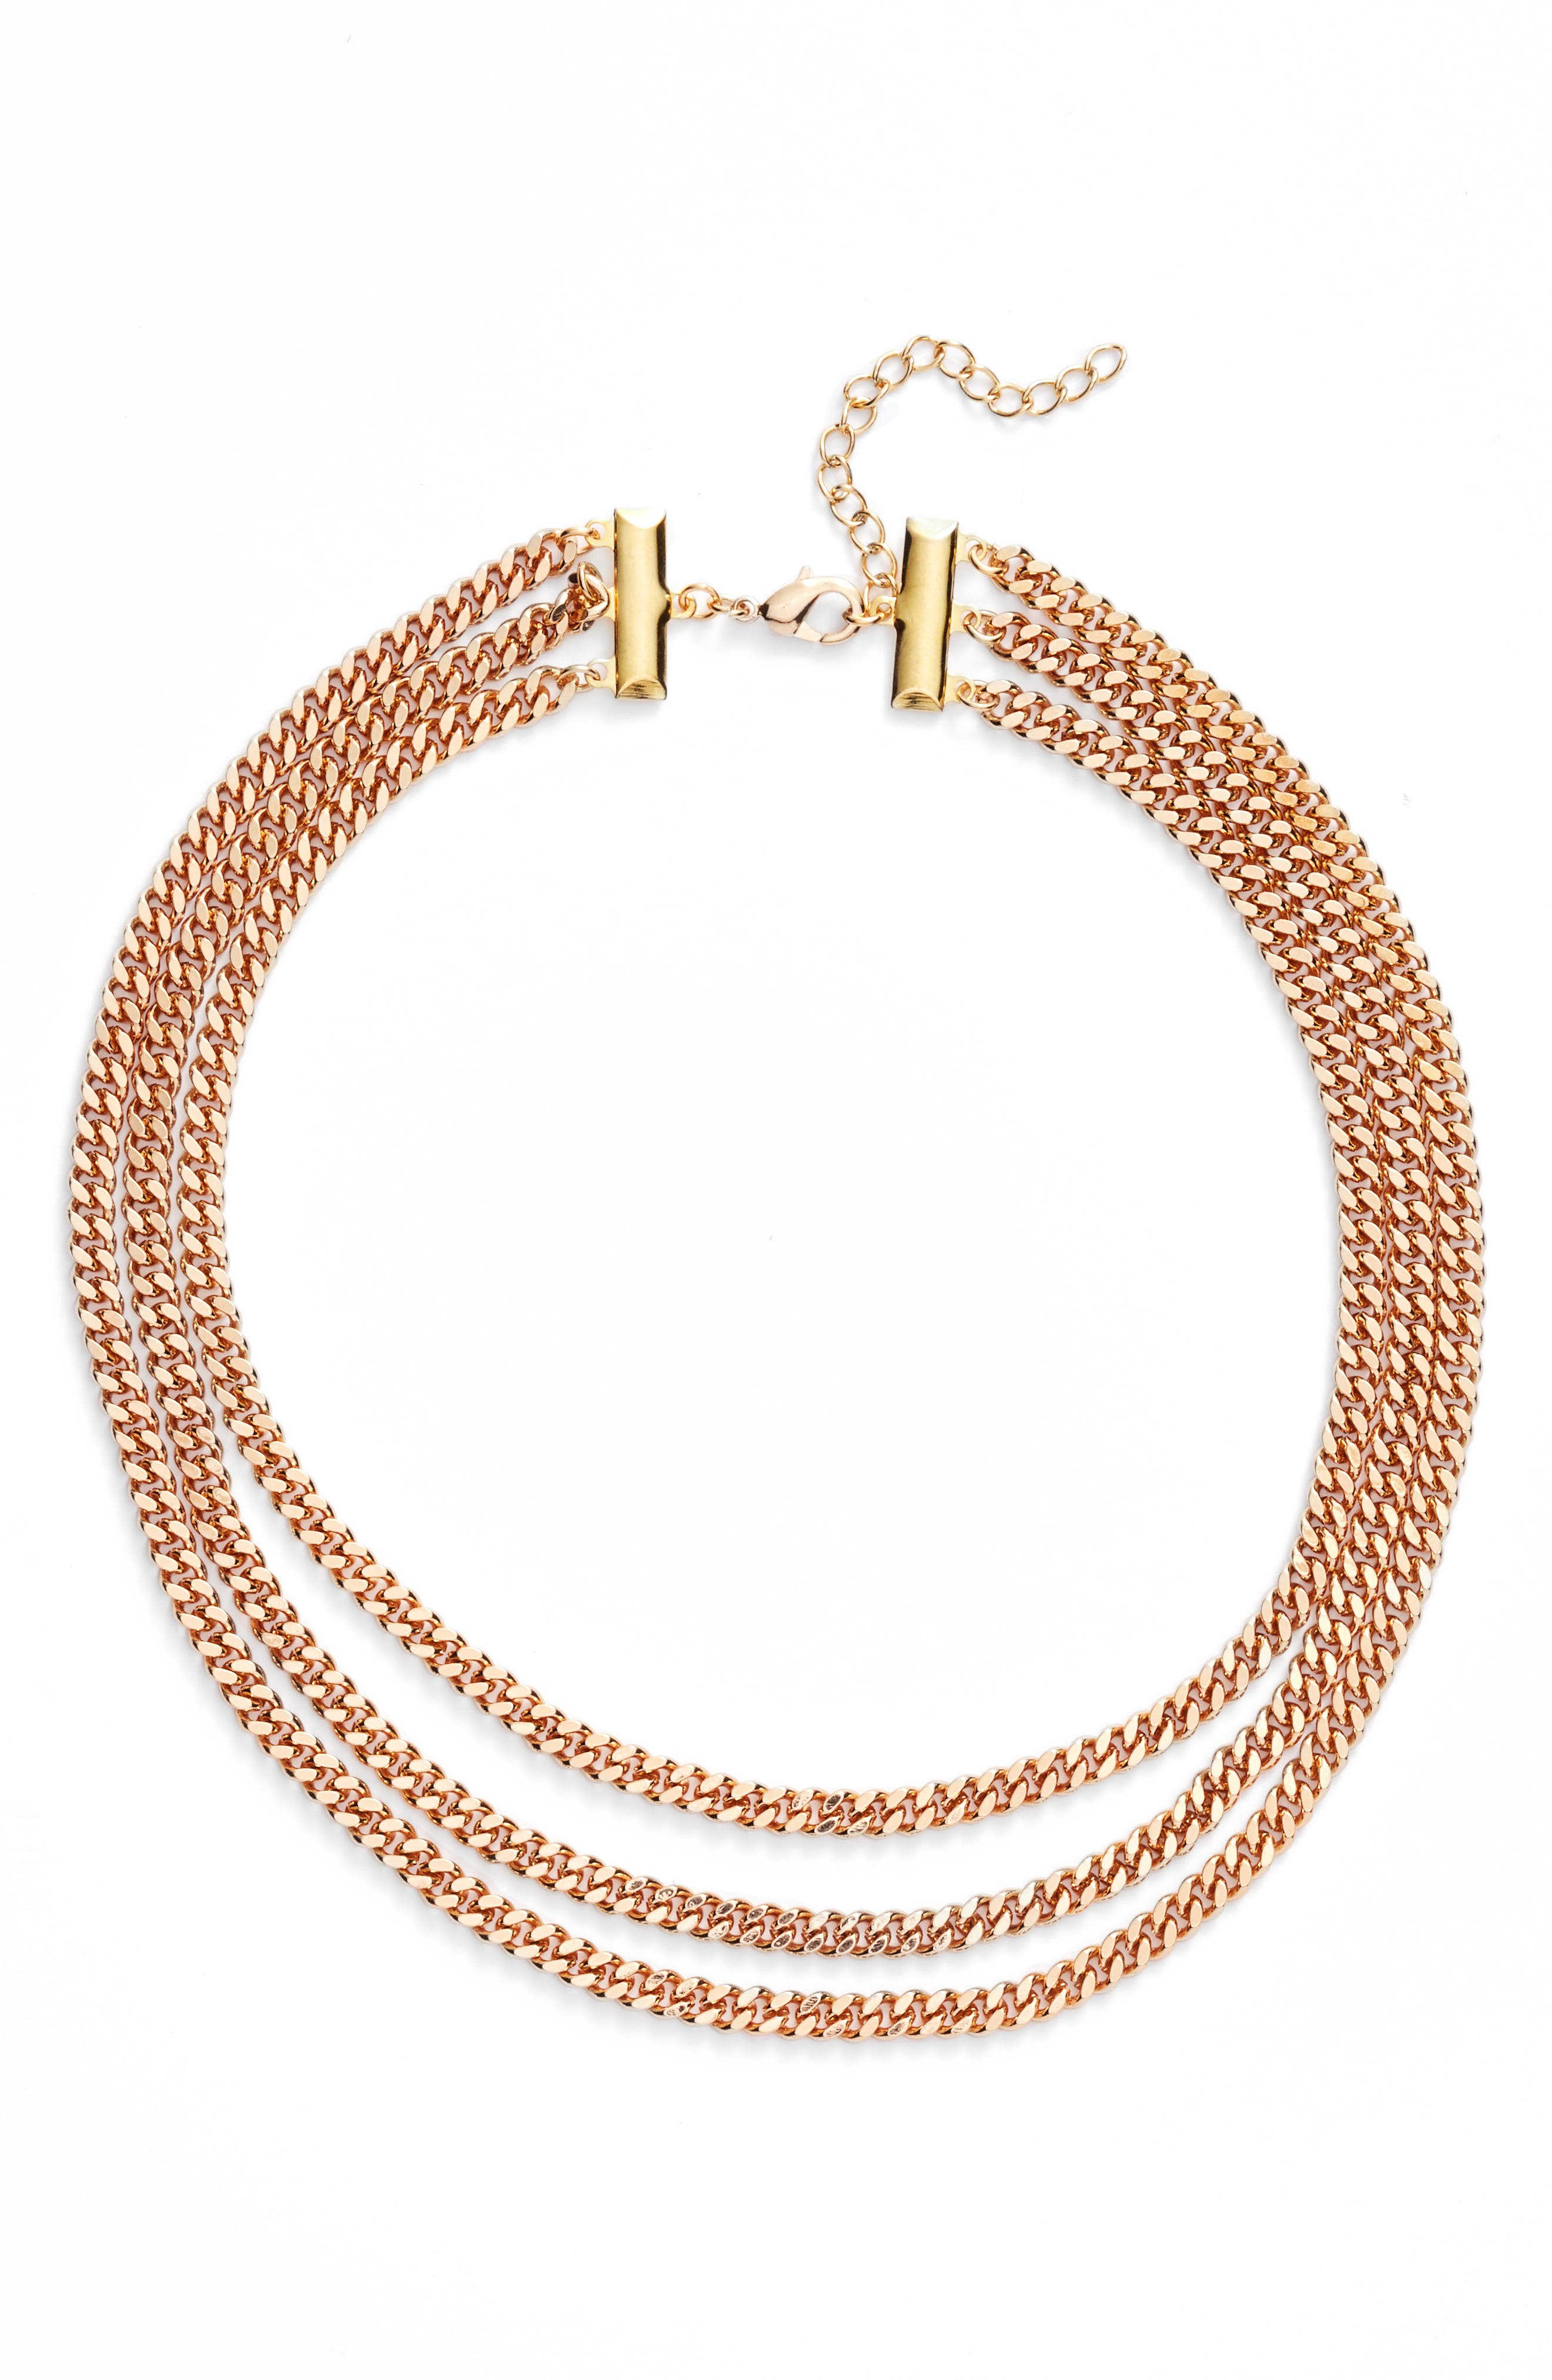 Main Image - FRASIER STERLING Layered Curb Chain Choker